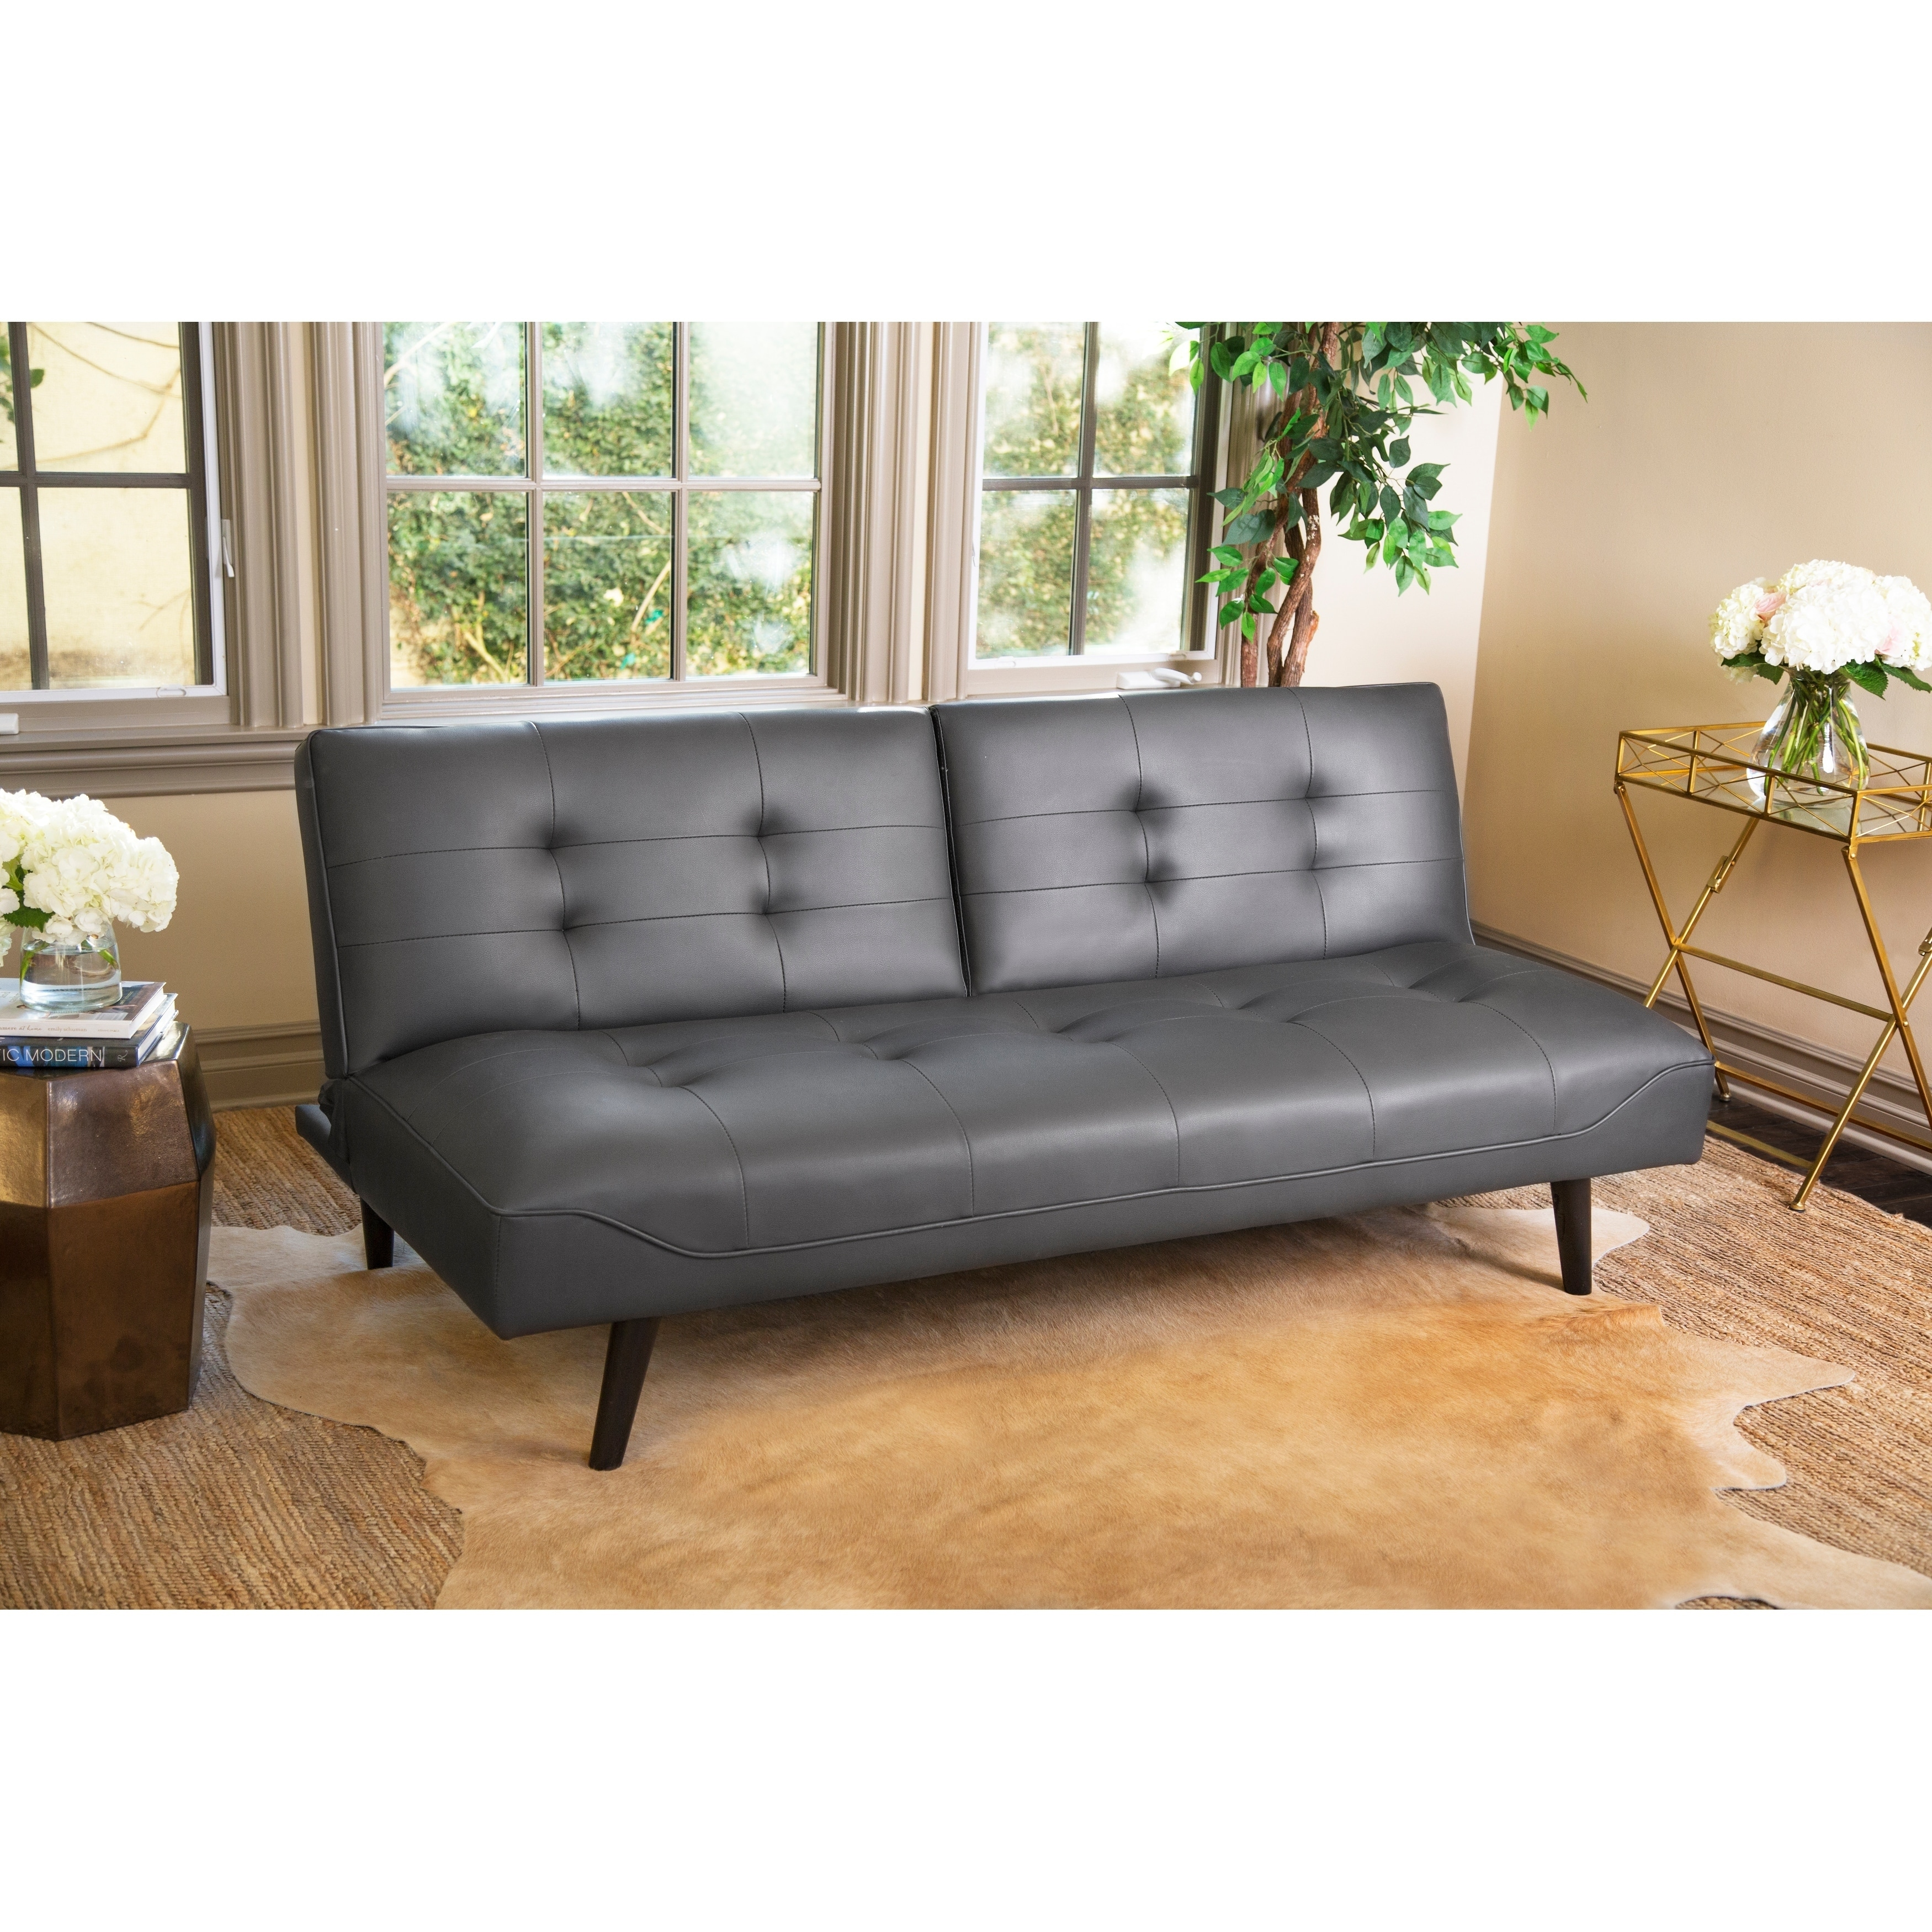 tufted futons ip less com colors couch multiple walmart contempo for futon mainstays